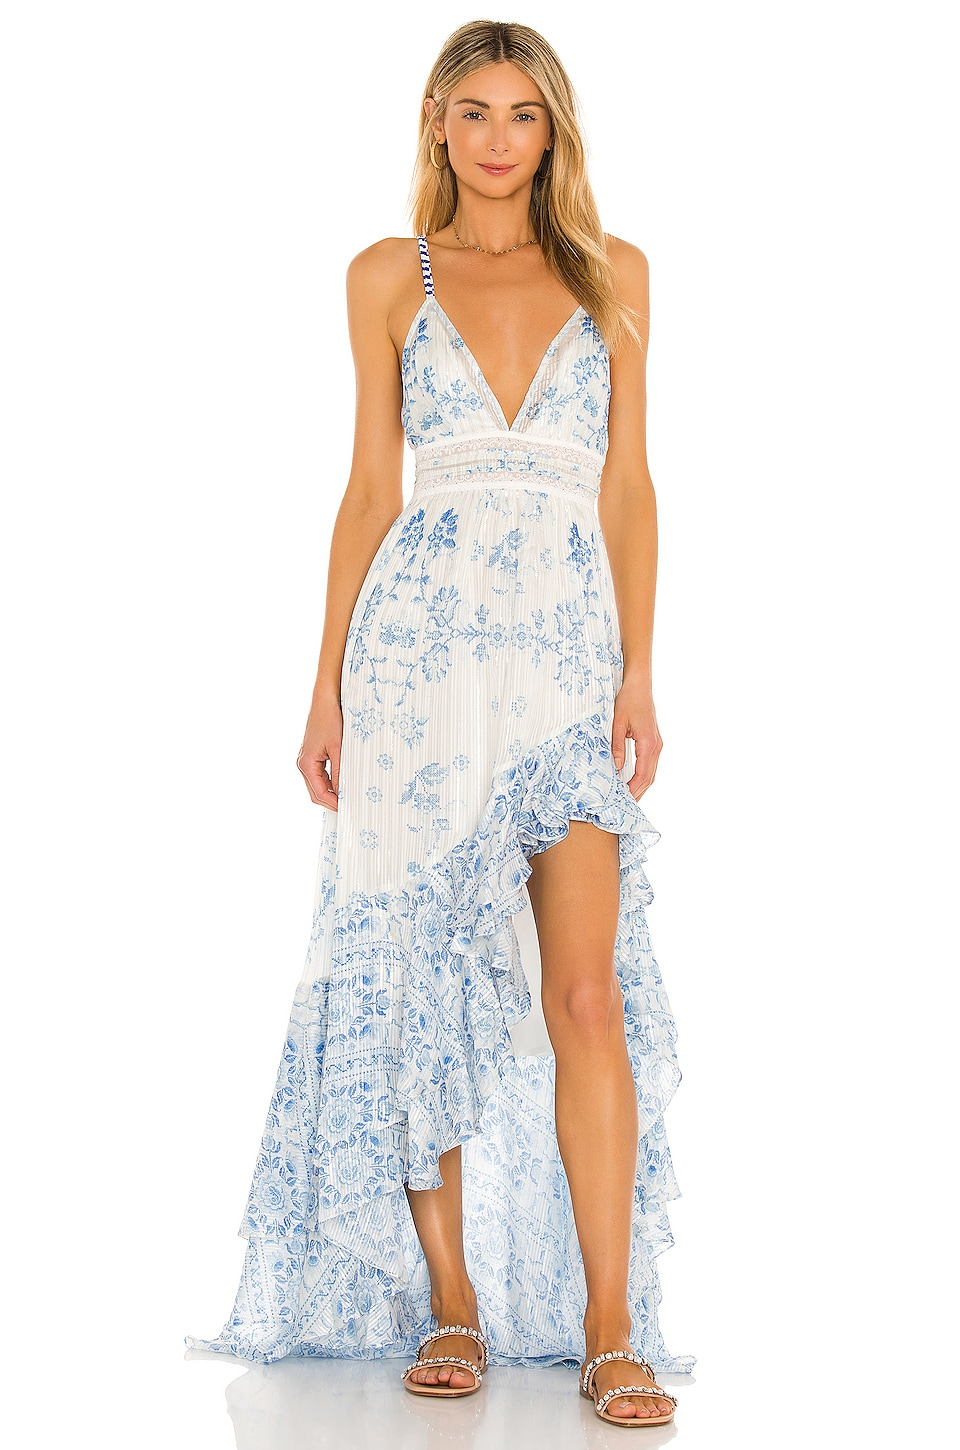 ROCOCO SAND Leas High Low Dress in White & Blue